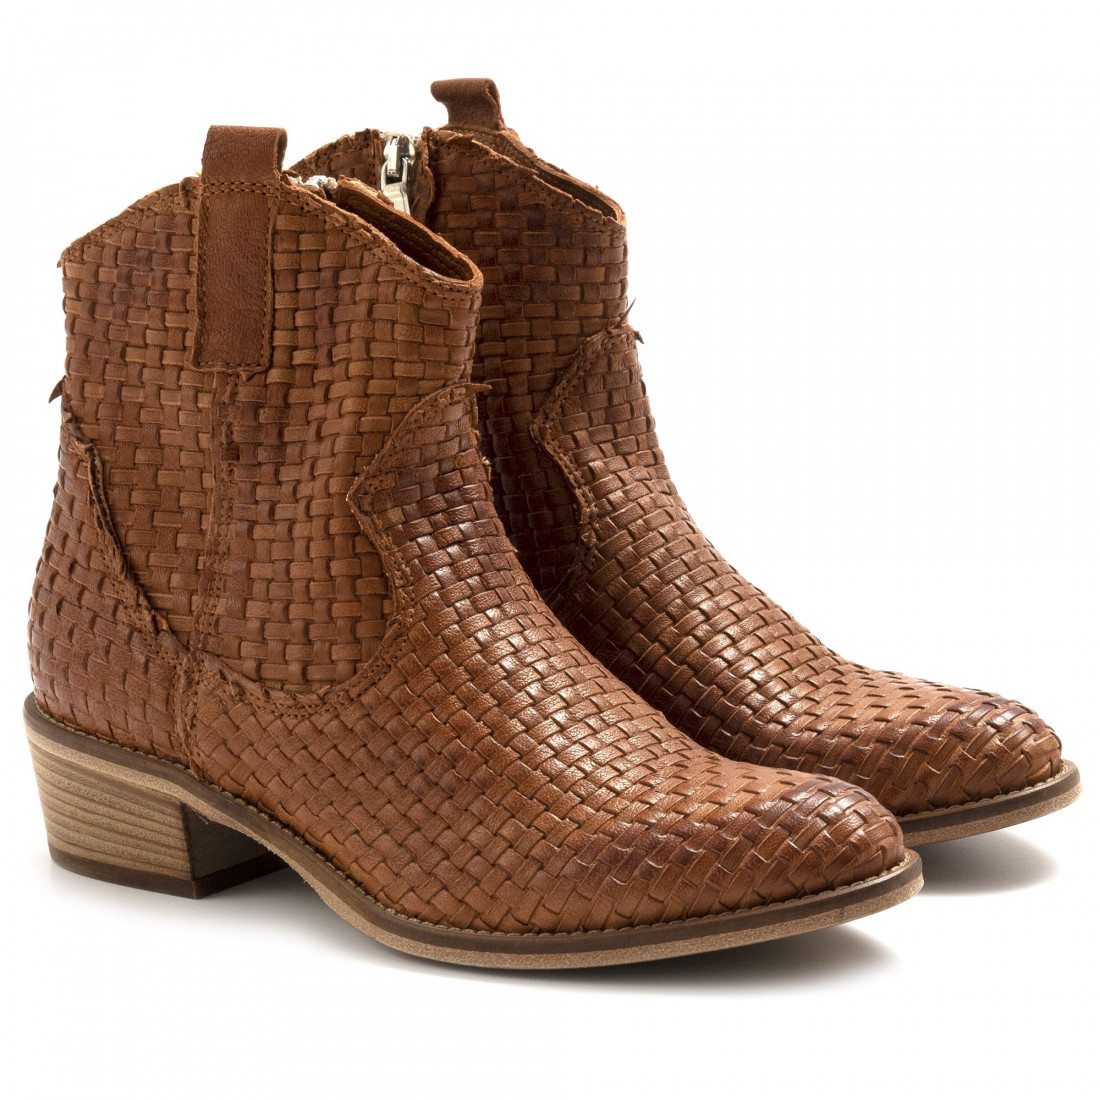 booties woman keb 303itop cuoio 6862